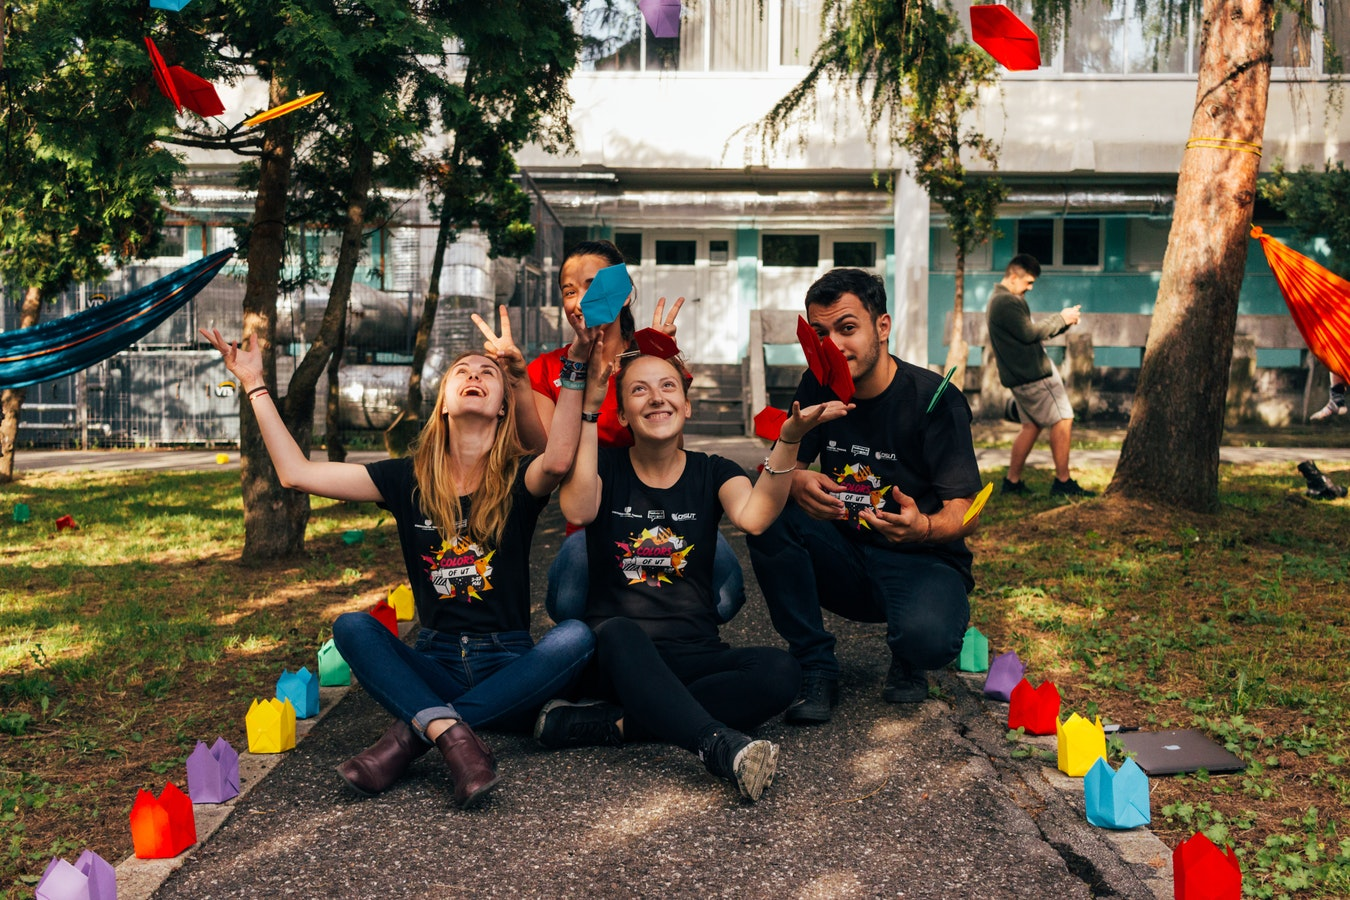 Here's the 8 types of students you'll meet at Leeds Becket University - which one are you and which ones are your friends?